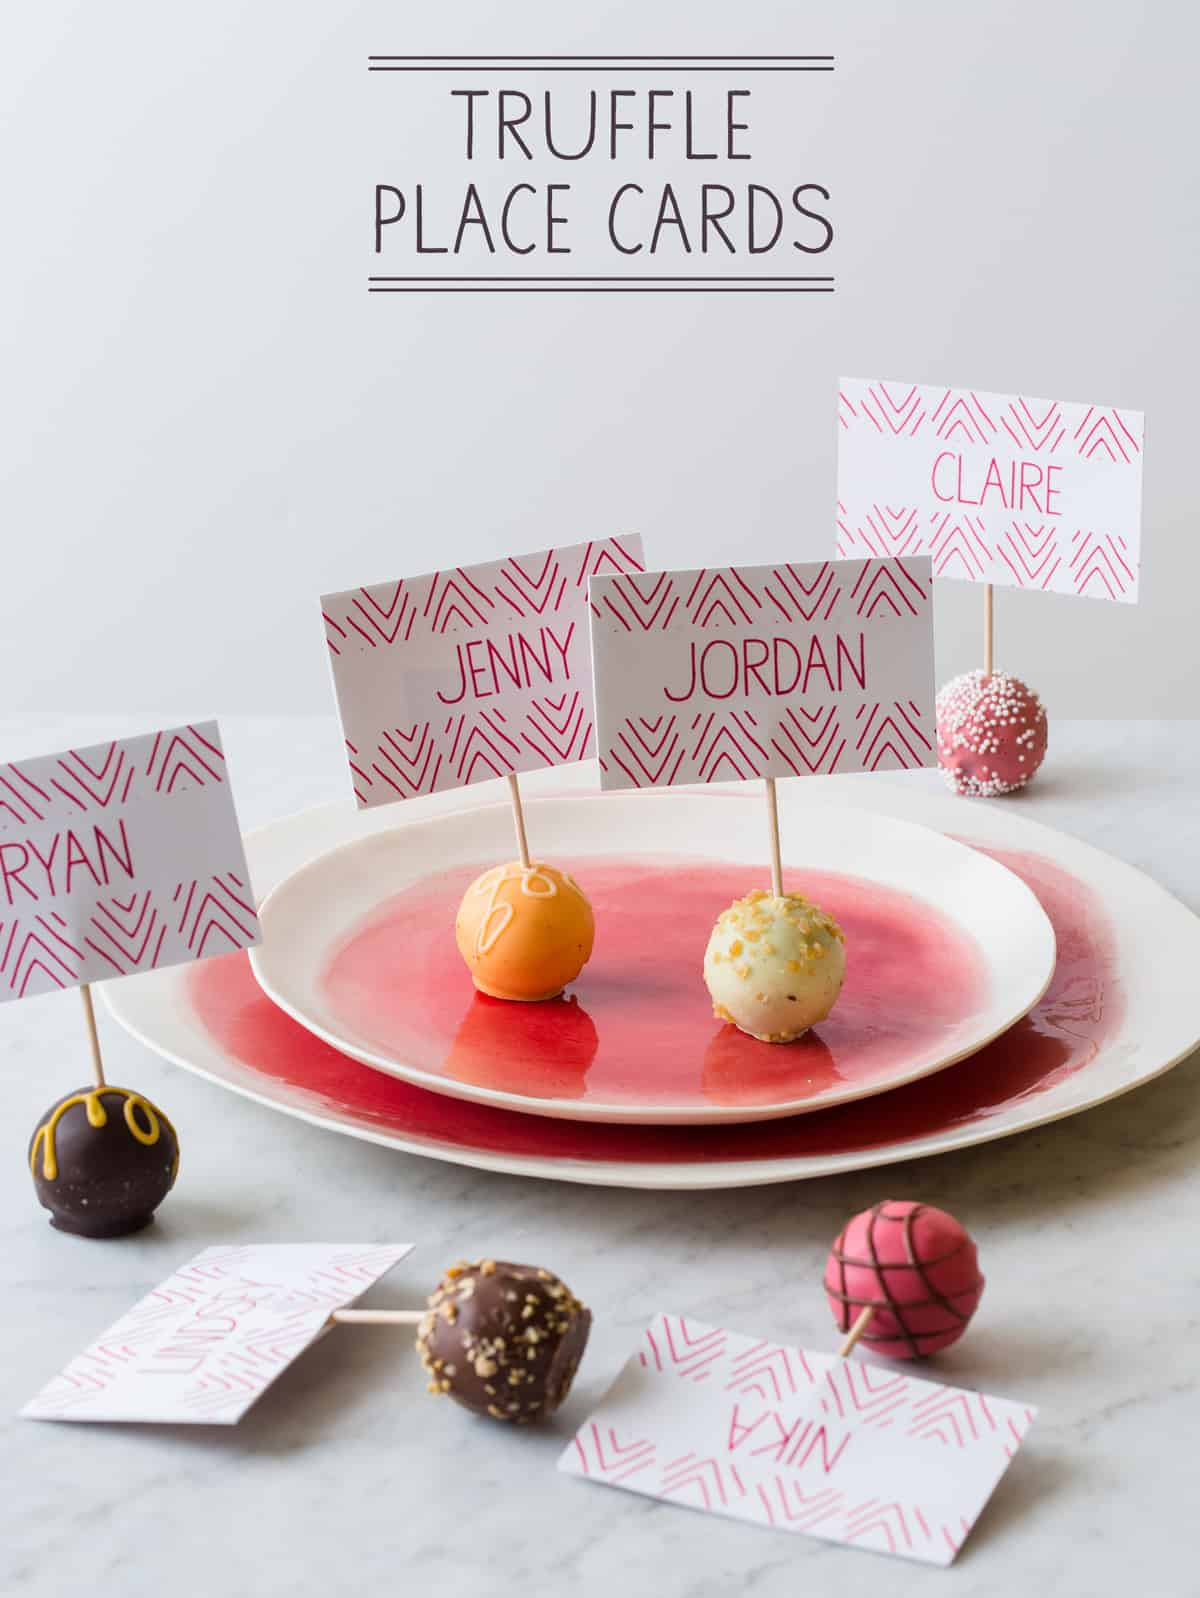 Truffle Place Cards Place Card Diy Spoon Fork Bacon